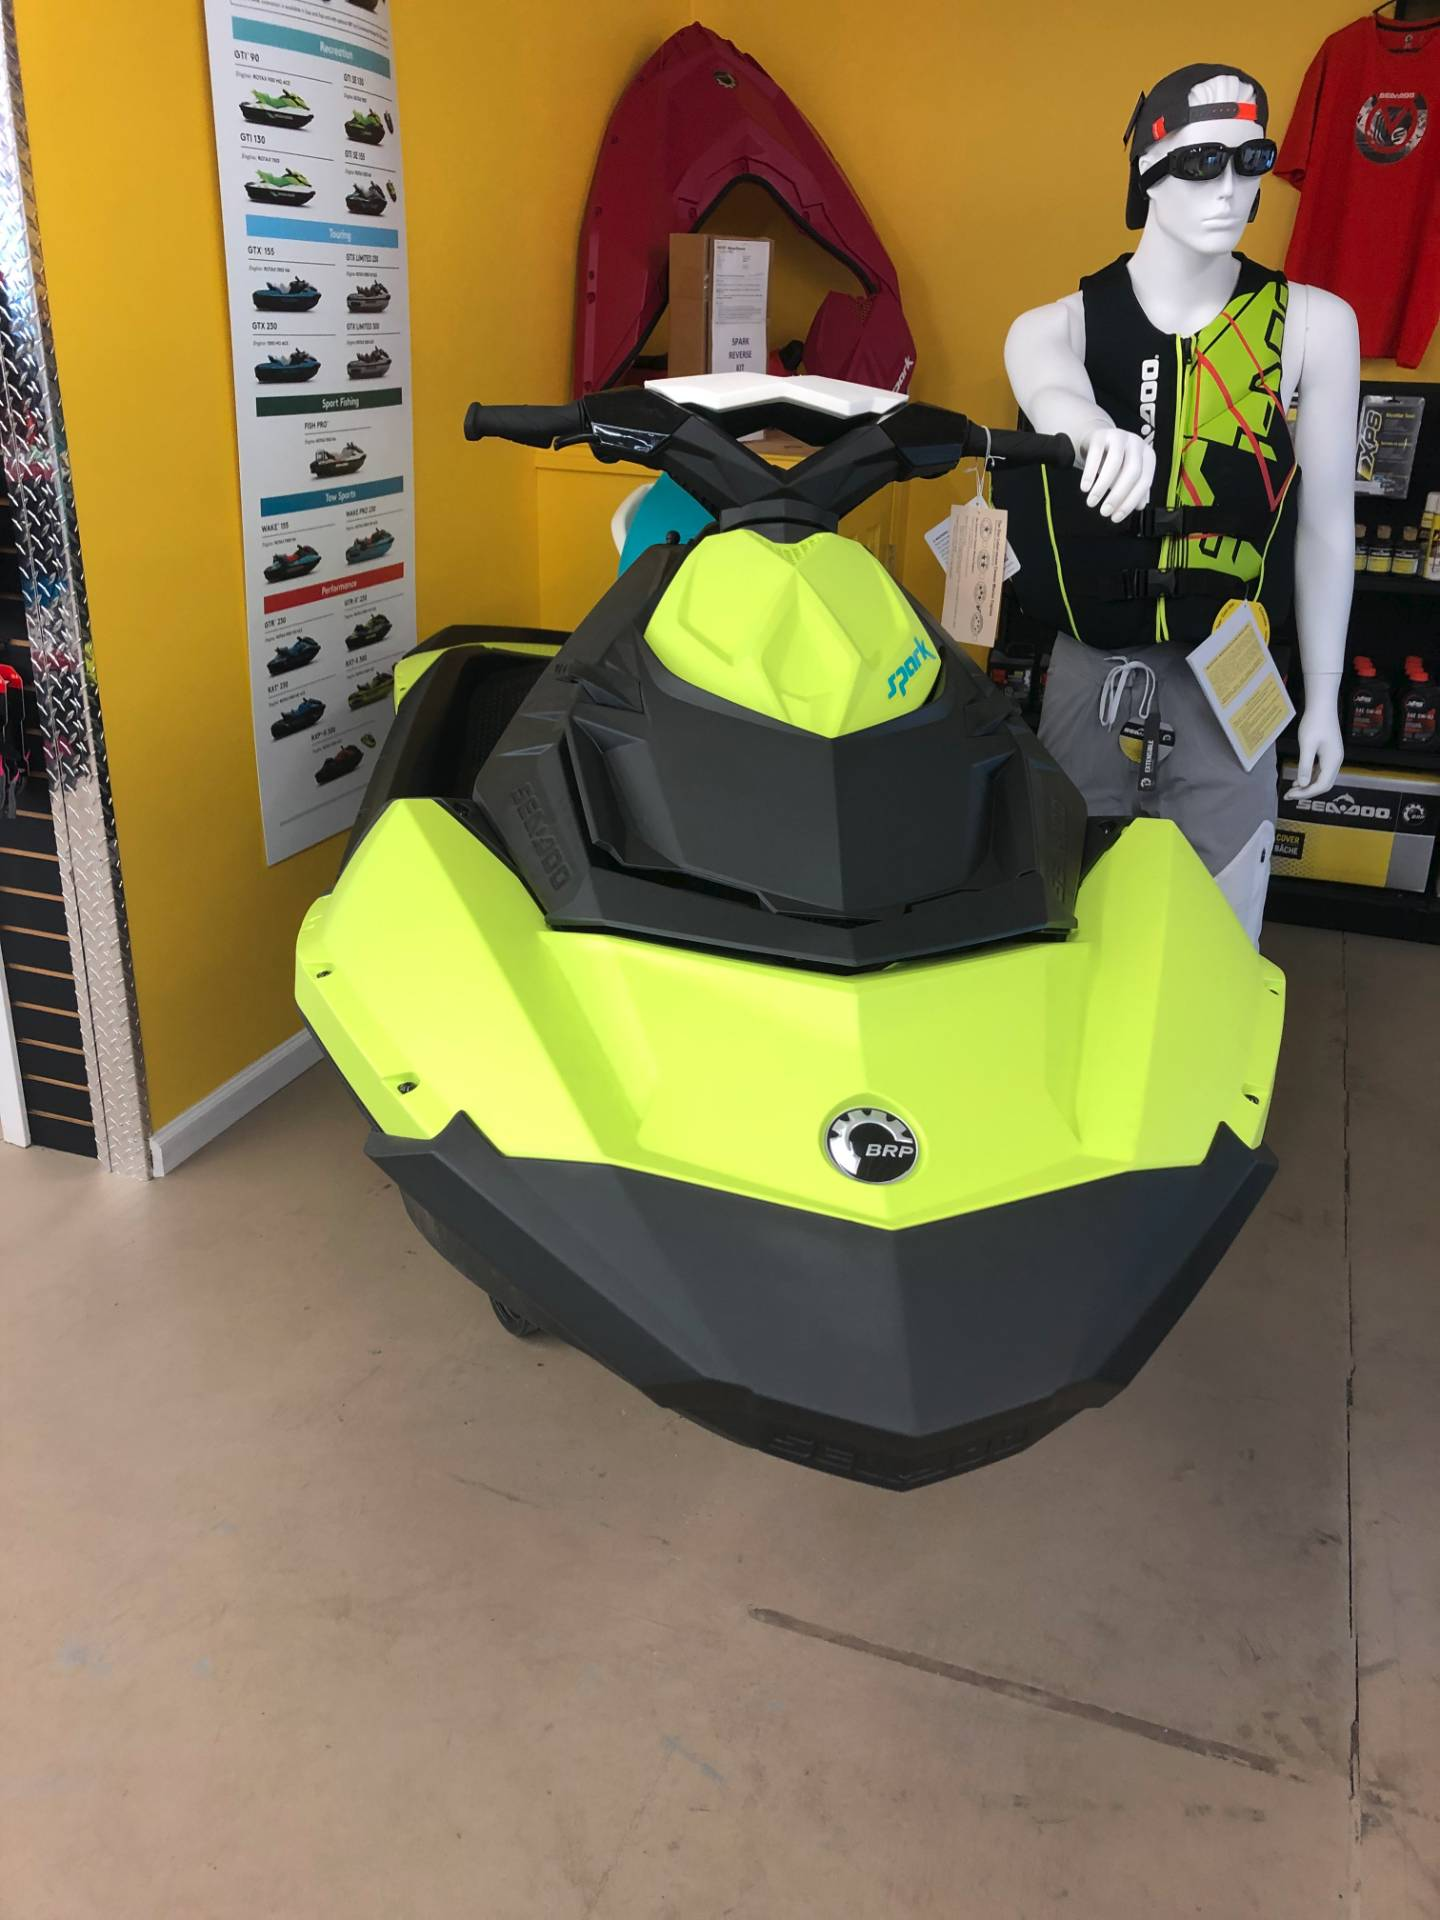 2019 SEA DOO 62KA00 PW SPARK 3 UP 900HO NY/RB19 in Harrisburg, Illinois - Photo 1